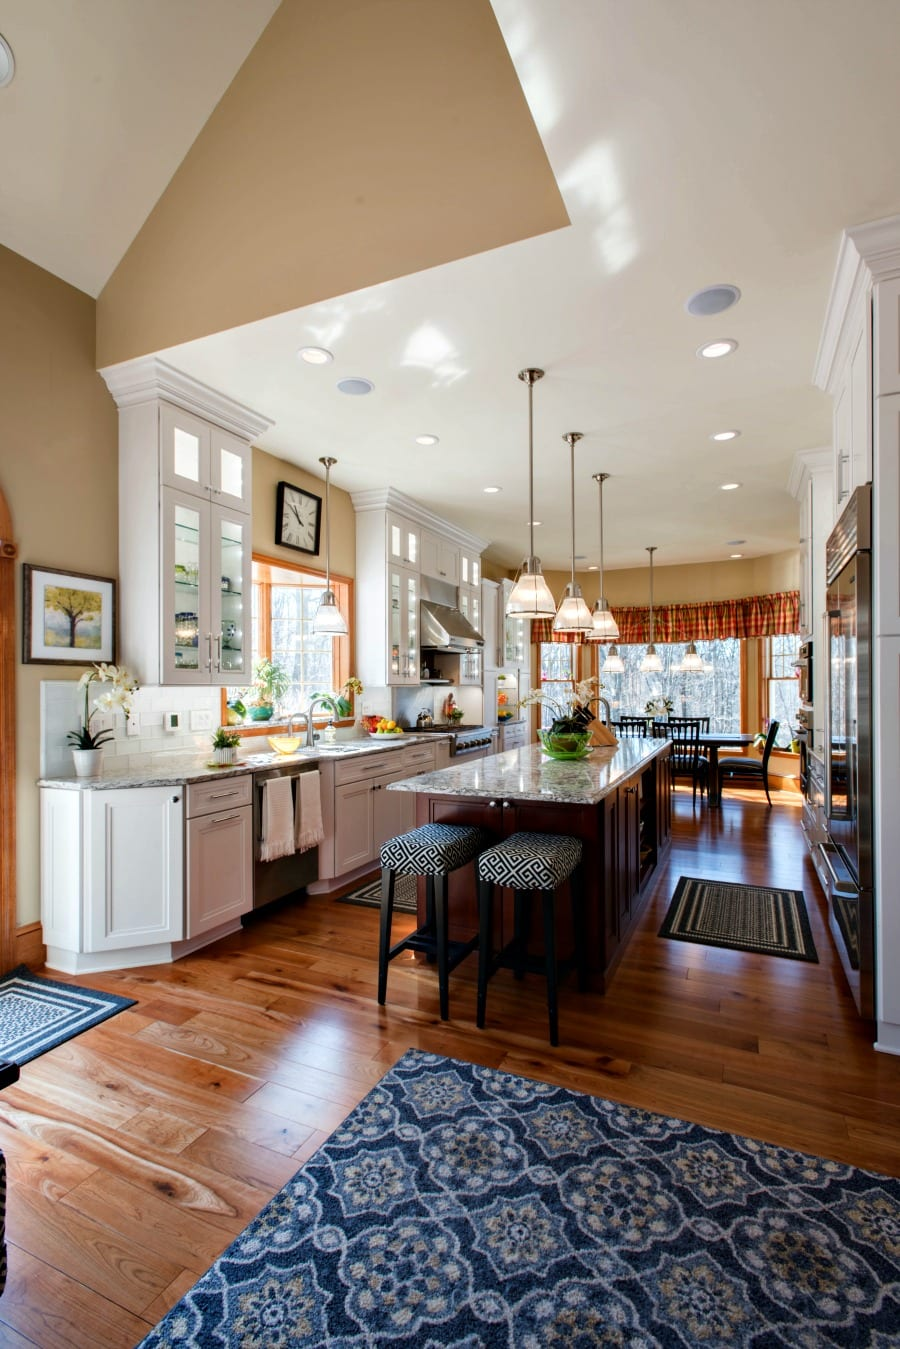 Home Construction For Your Interior Remodeling Needs  DBS